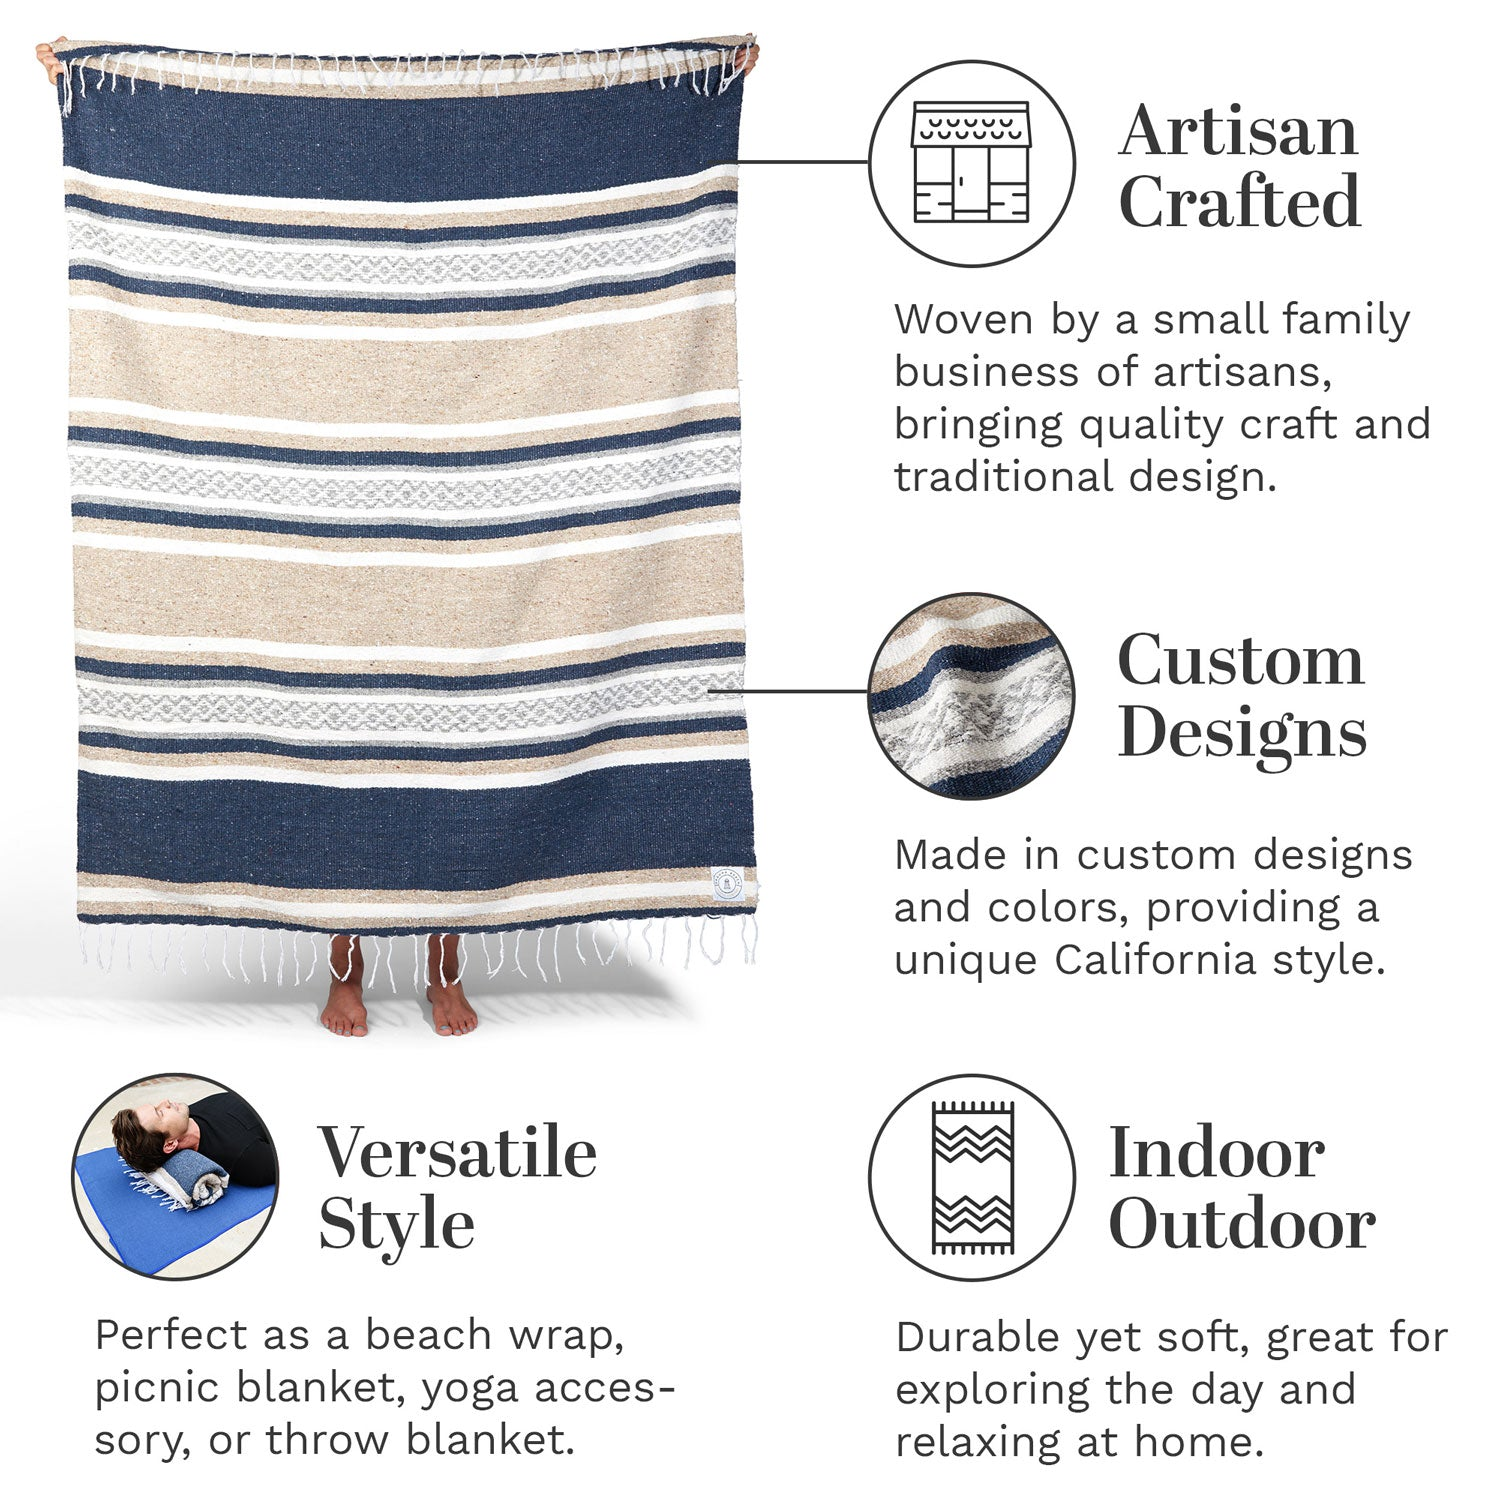 Infographic of our slate blue, gray, and tan Mexican blanket highlighting its artisan craftsmanship and versatile style for use at home, on the beach, and for yoga.